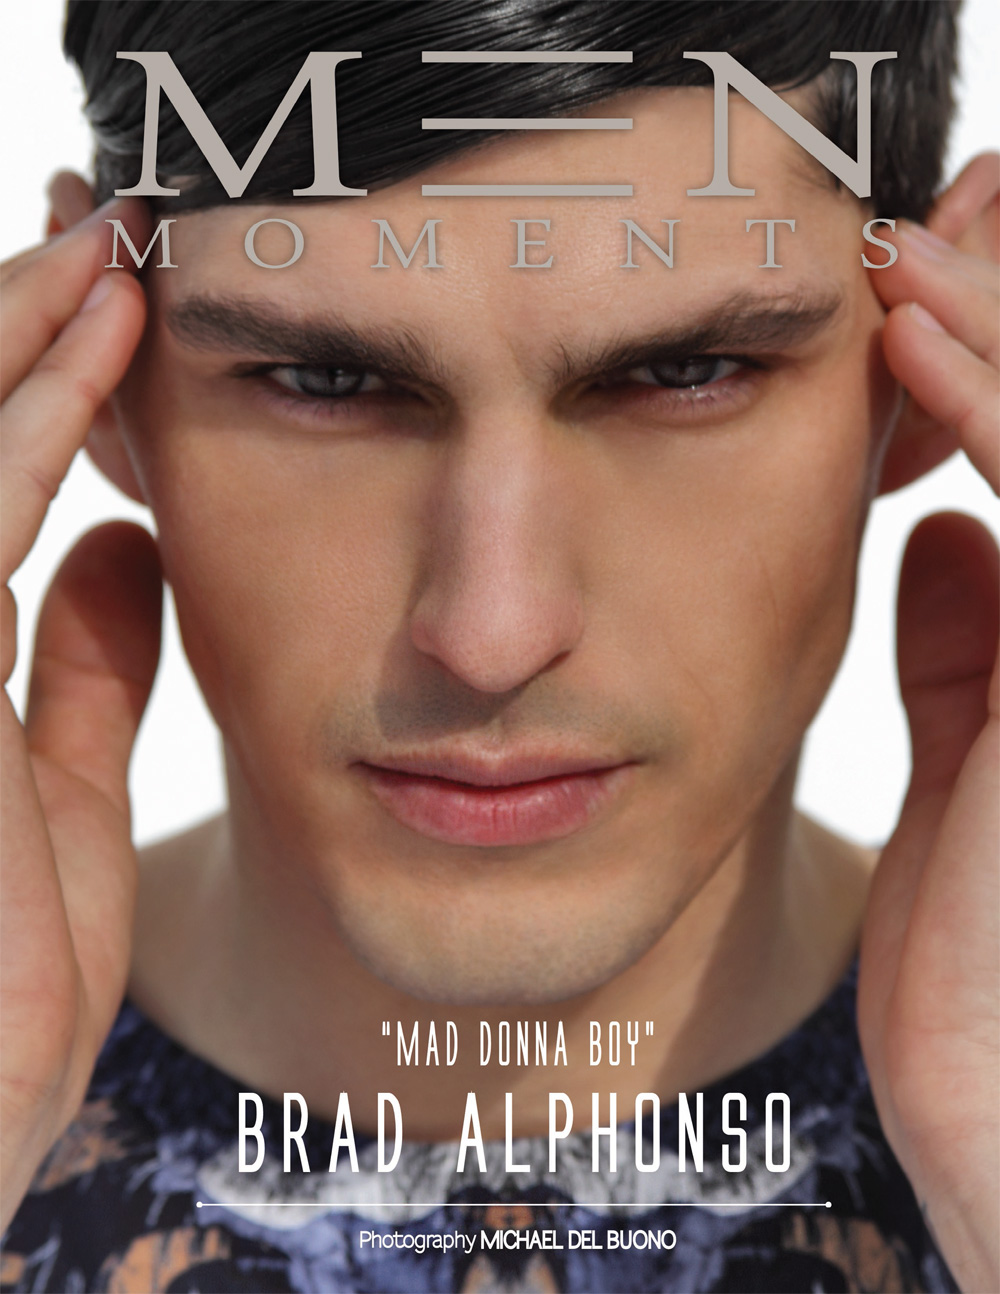 The new cover and story for Men Moments Magazine Issue 9 covers Brad Alphonso at Wilhelmina Models NYC with an stunning photography by talented Michael del Buono. Styled by Rebecca Engling modeling casual and luxury garments from Zara, Gucci, Armani, Dolce & Gabbana, among others.